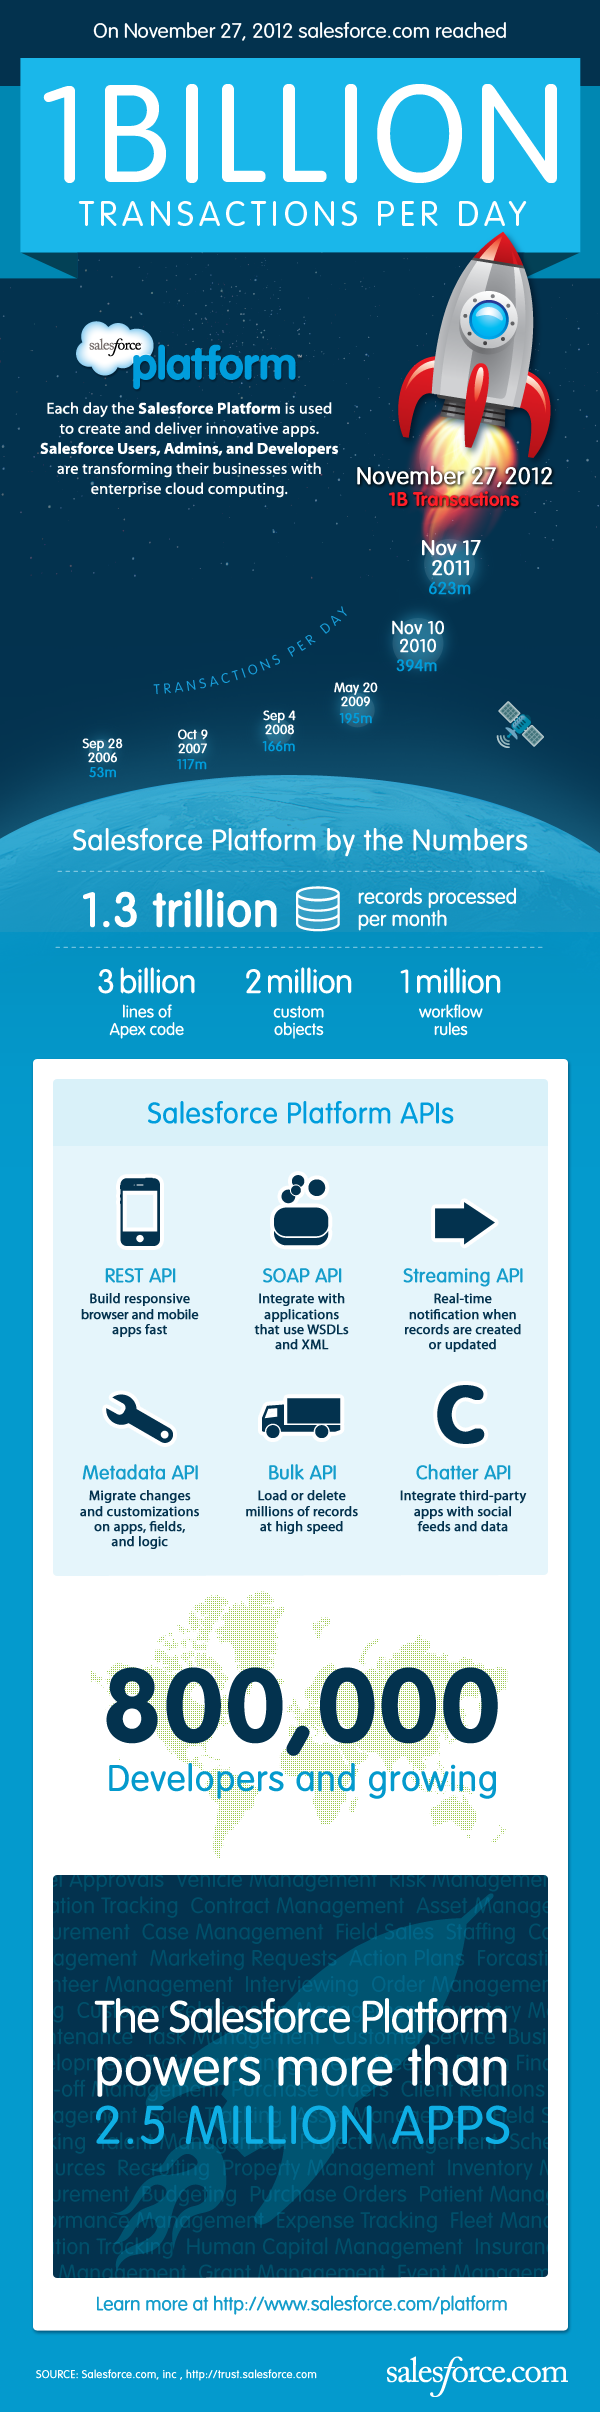 1B final 1127 Salesforce completes first 1bn transaction day, just a week after record $3bn annual revenues